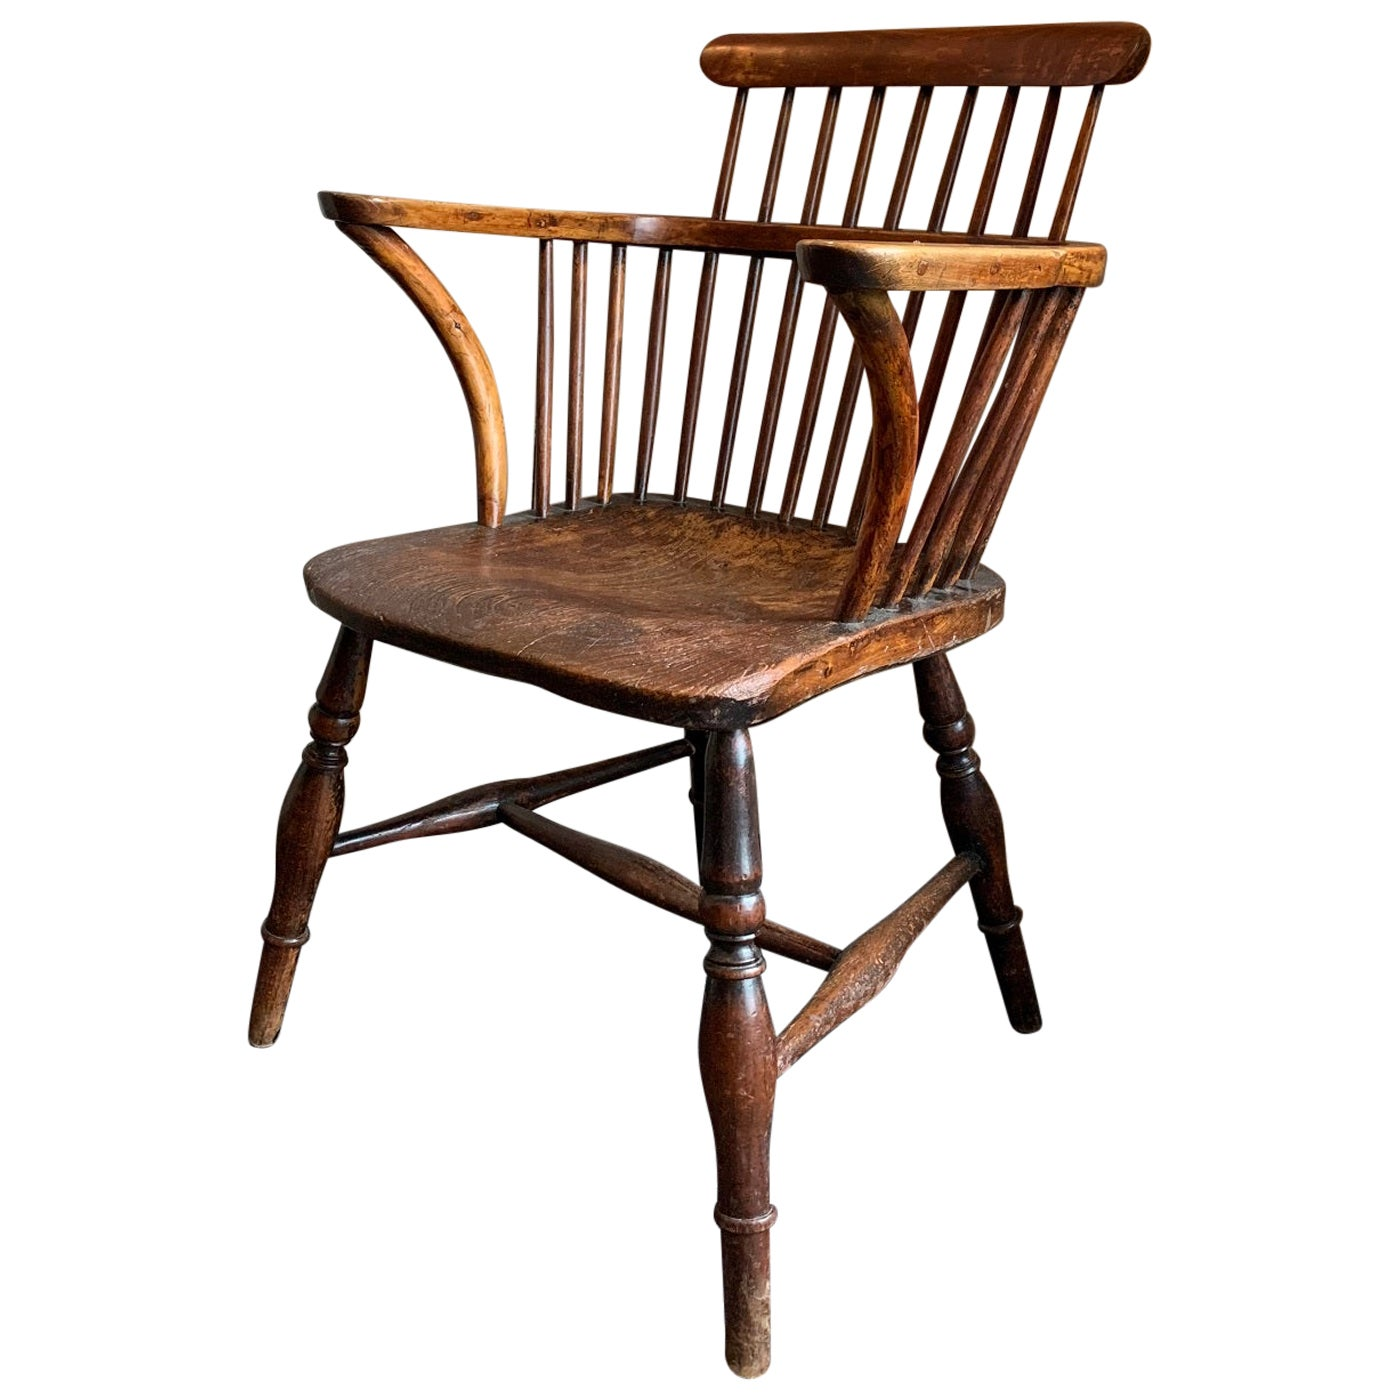 19th Century Comb Back Windsor Chair